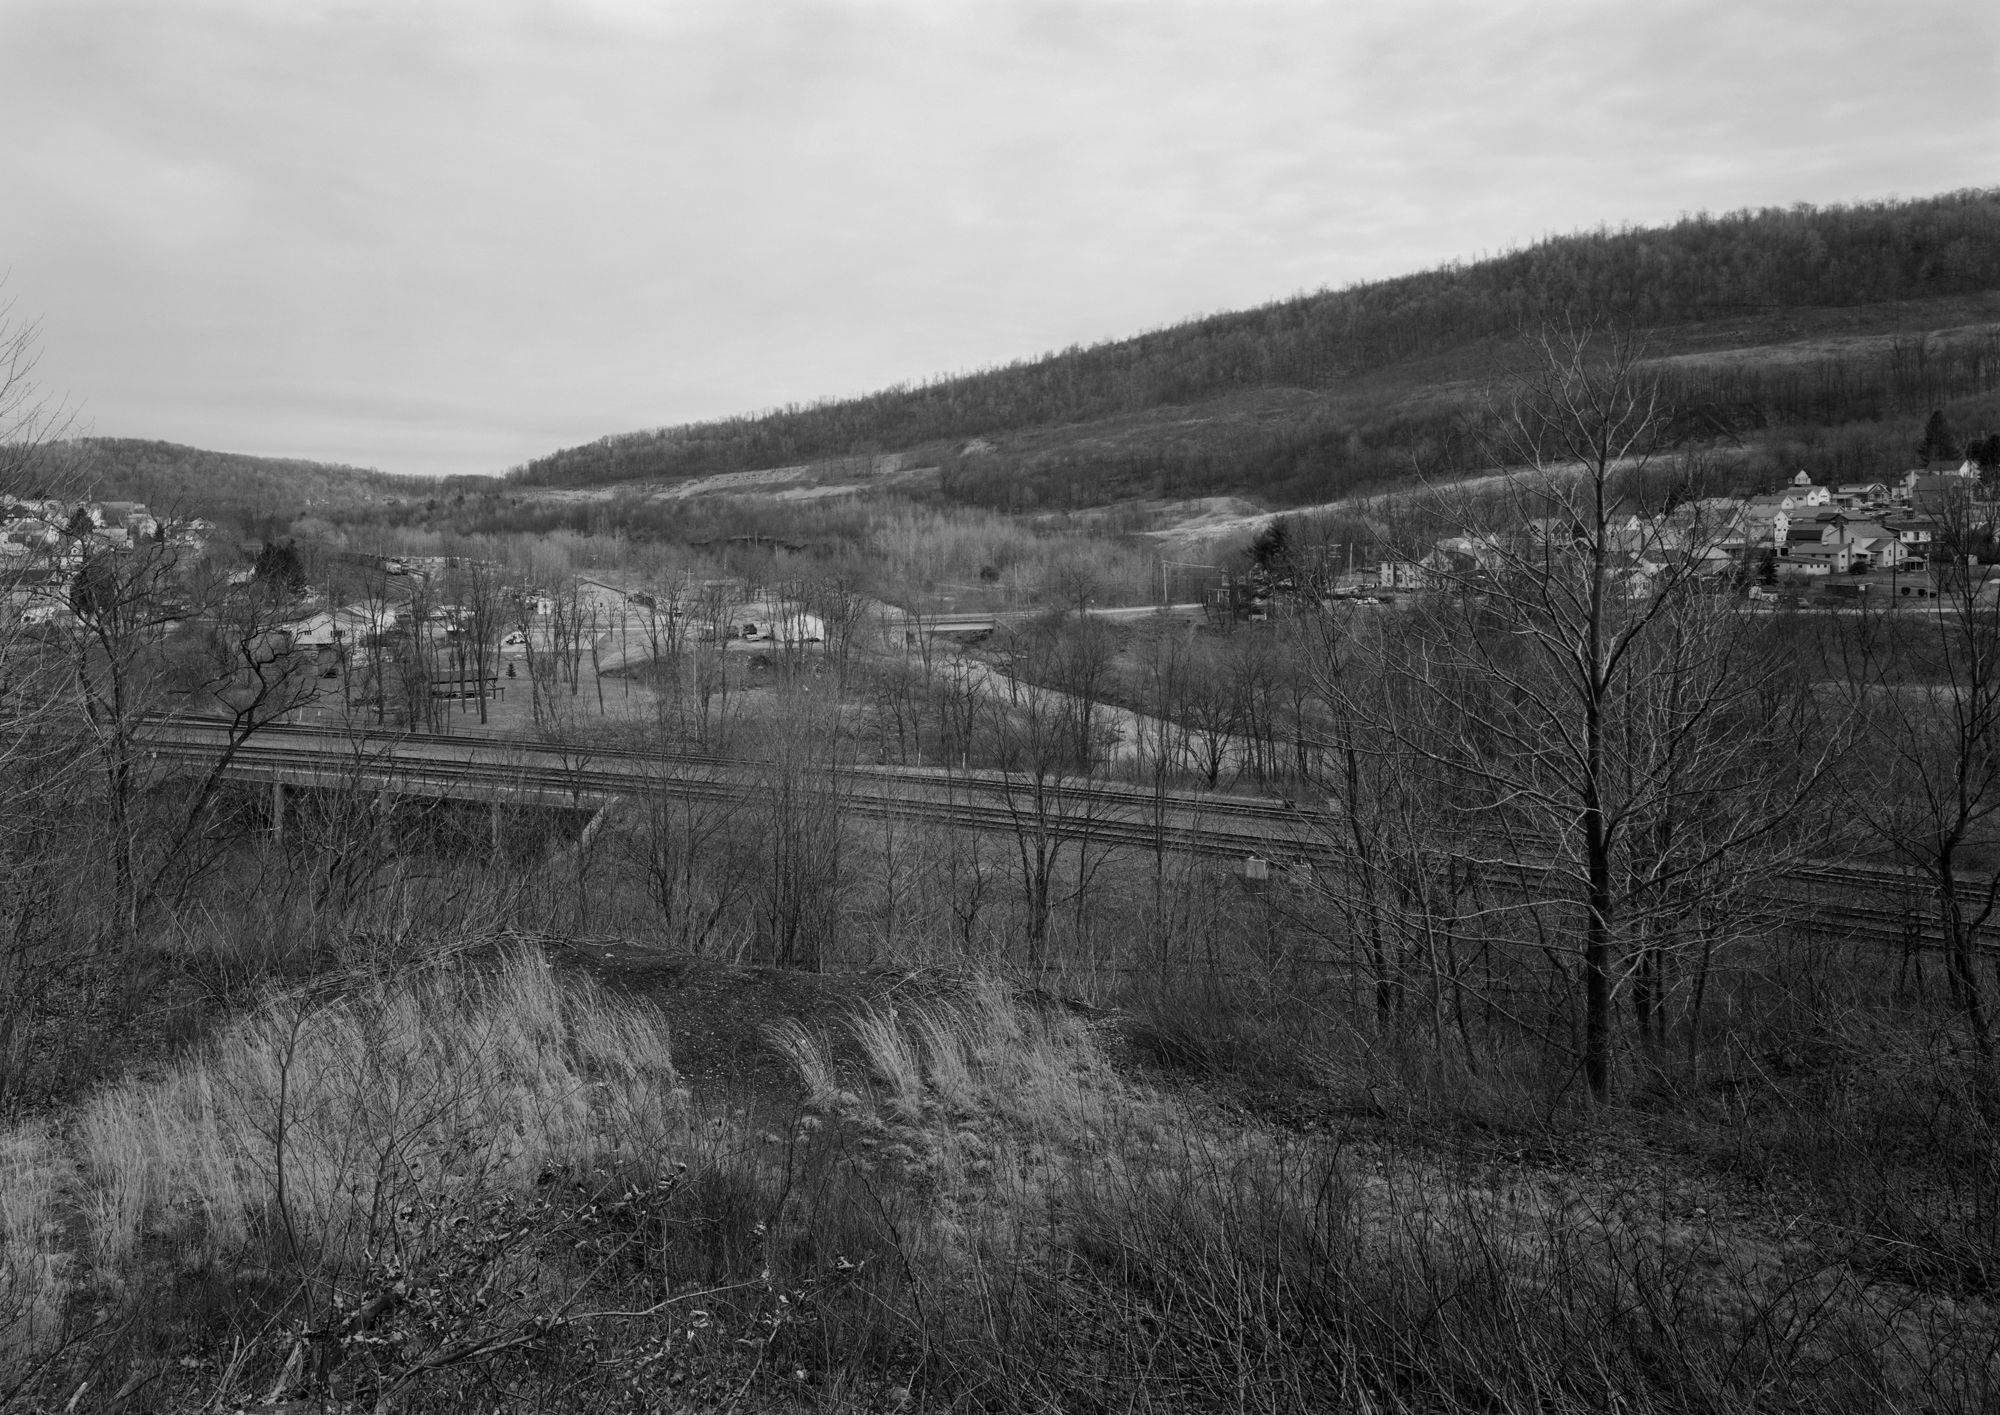 Taken from the former Portage Railroad alignment in neighboring Ehrnfield PA, the viewer can see the South Fork Valley carved by the Little Conemaugh River of which the town of about 1100 is named. The river played host to America's worst disaster, the Johnstown Flood in 1889, which the PRR played an instrumental role in the recovery and rebuilding of the area.